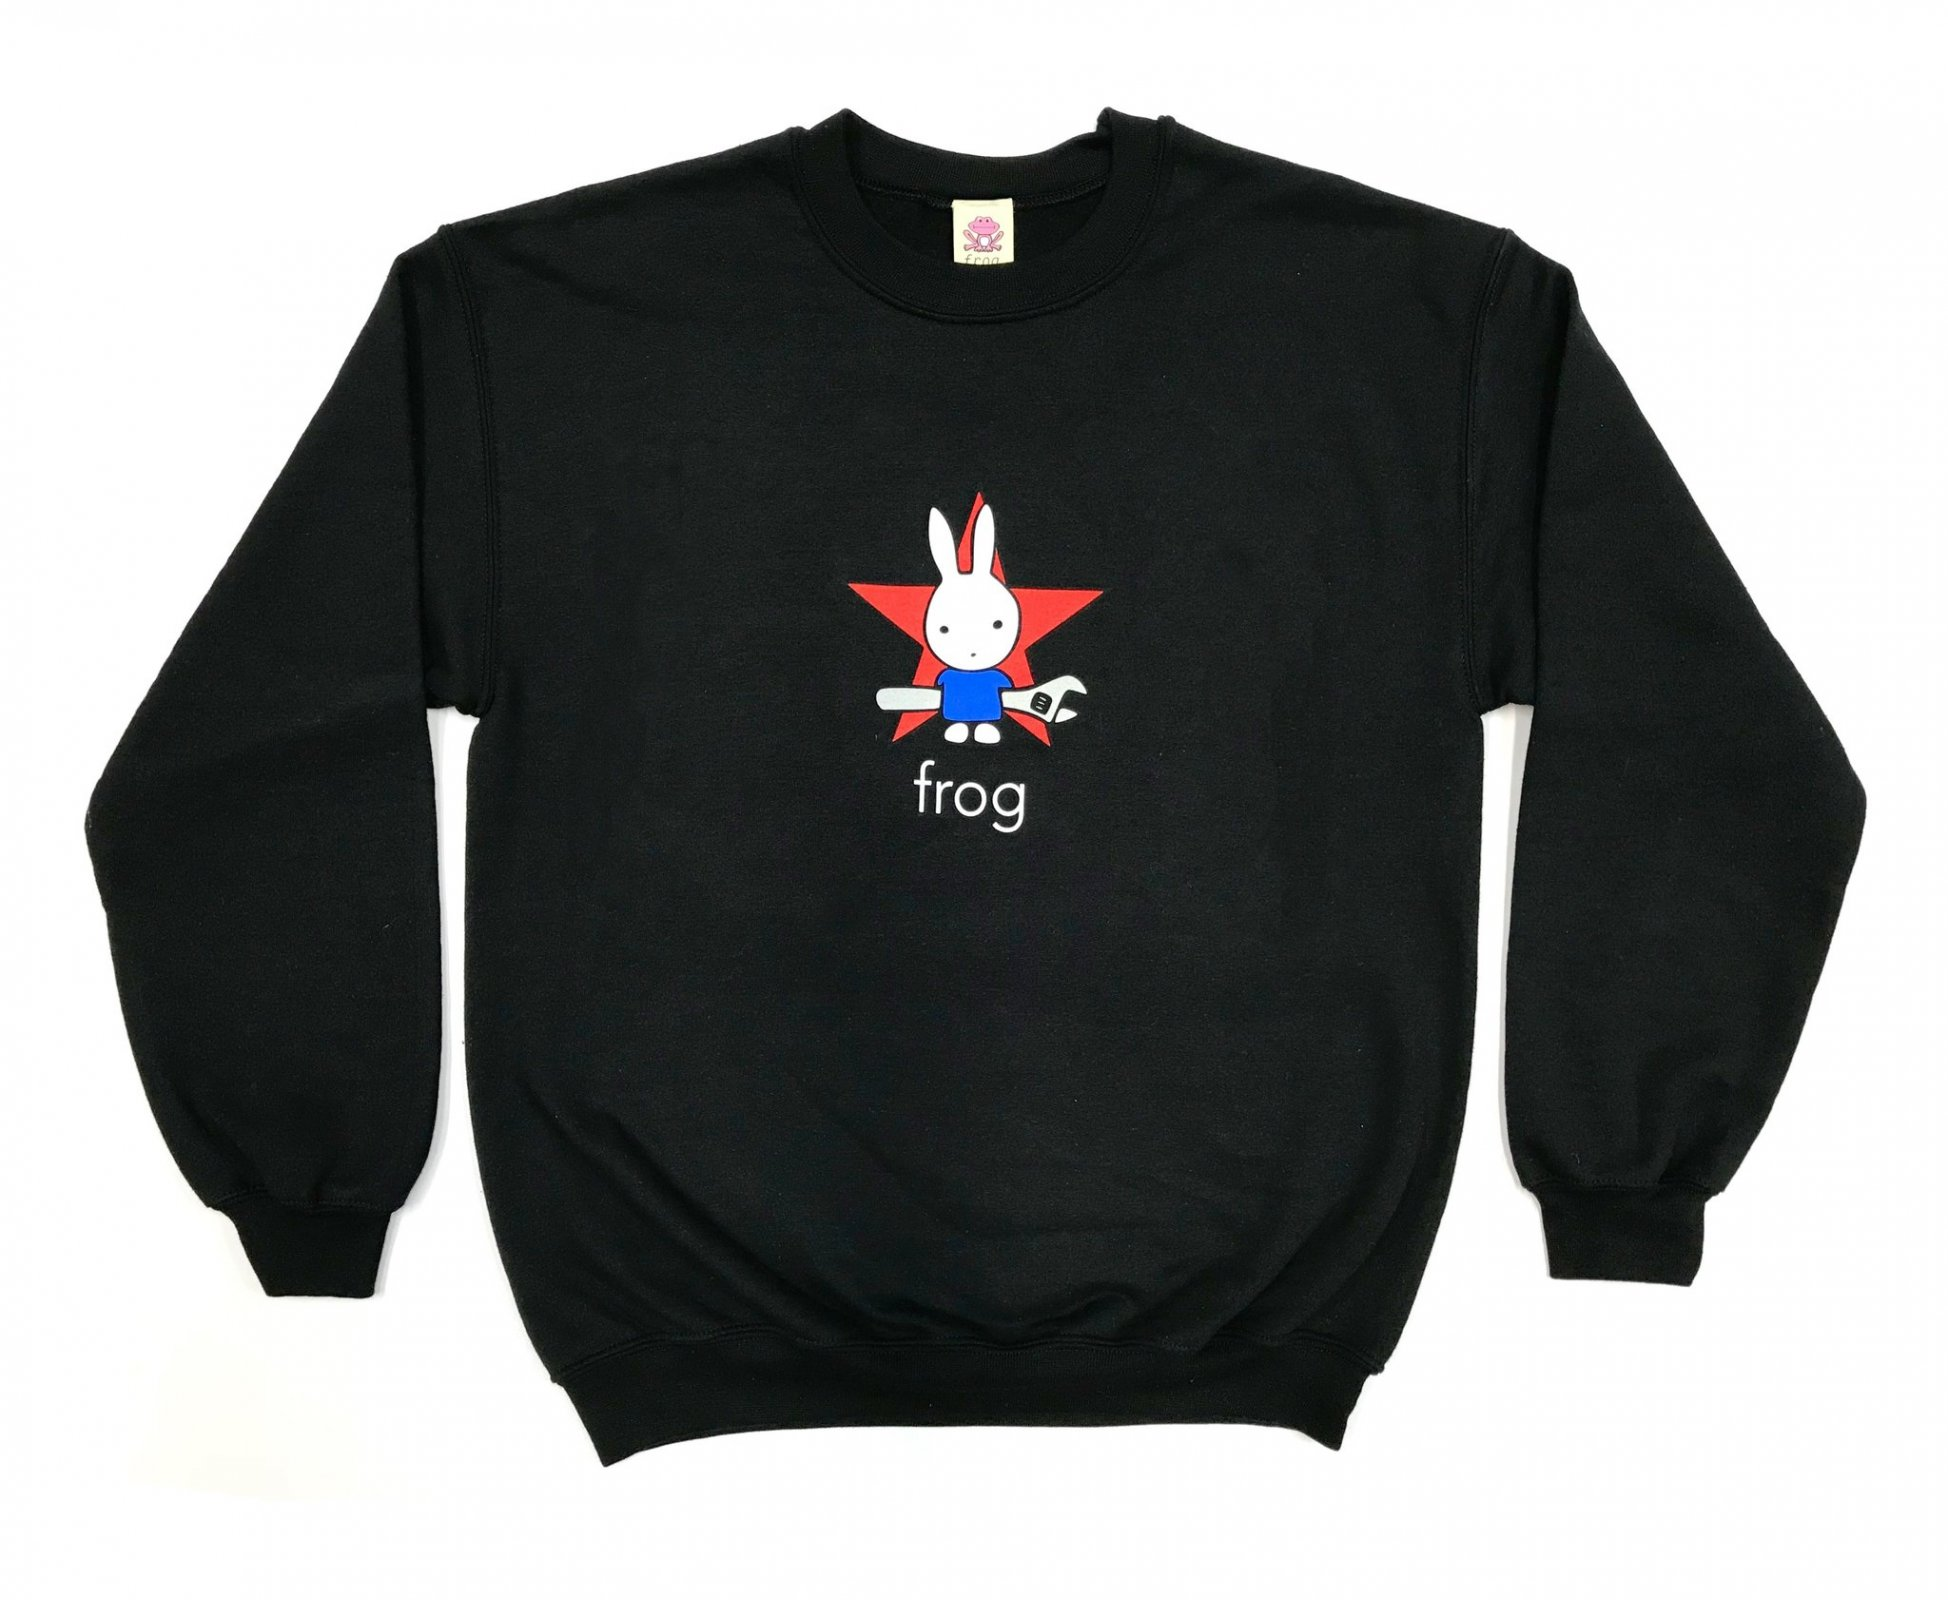 Frog Earth Defense Crewneck sweatshirt black